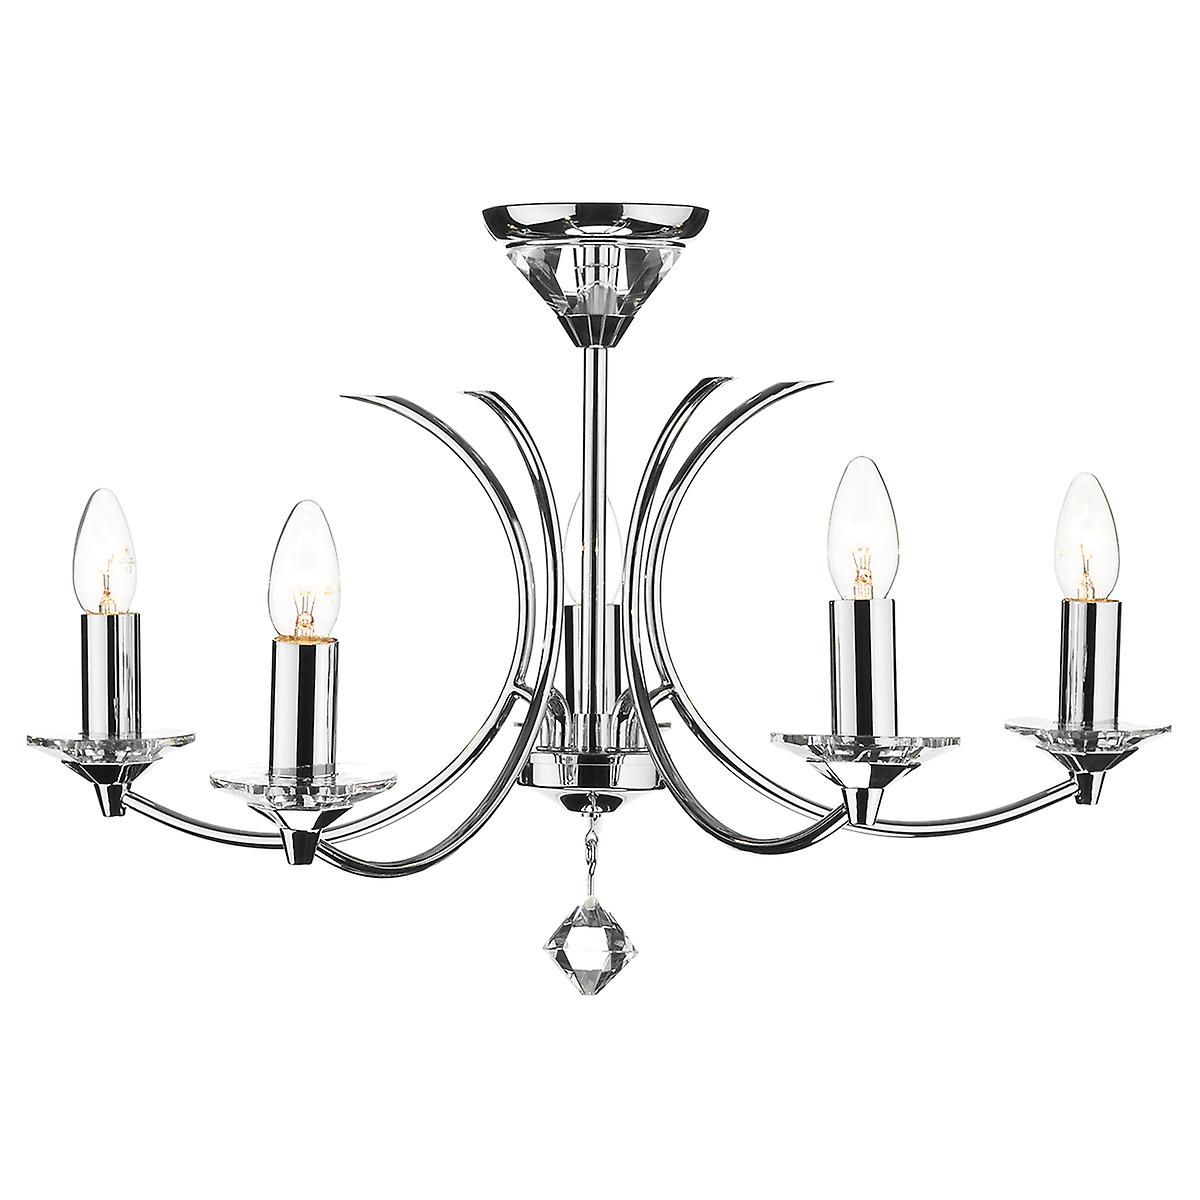 Dar MED0550 Medusa 5 Arm Ceiling Pendant With Crystal - Dual Mount